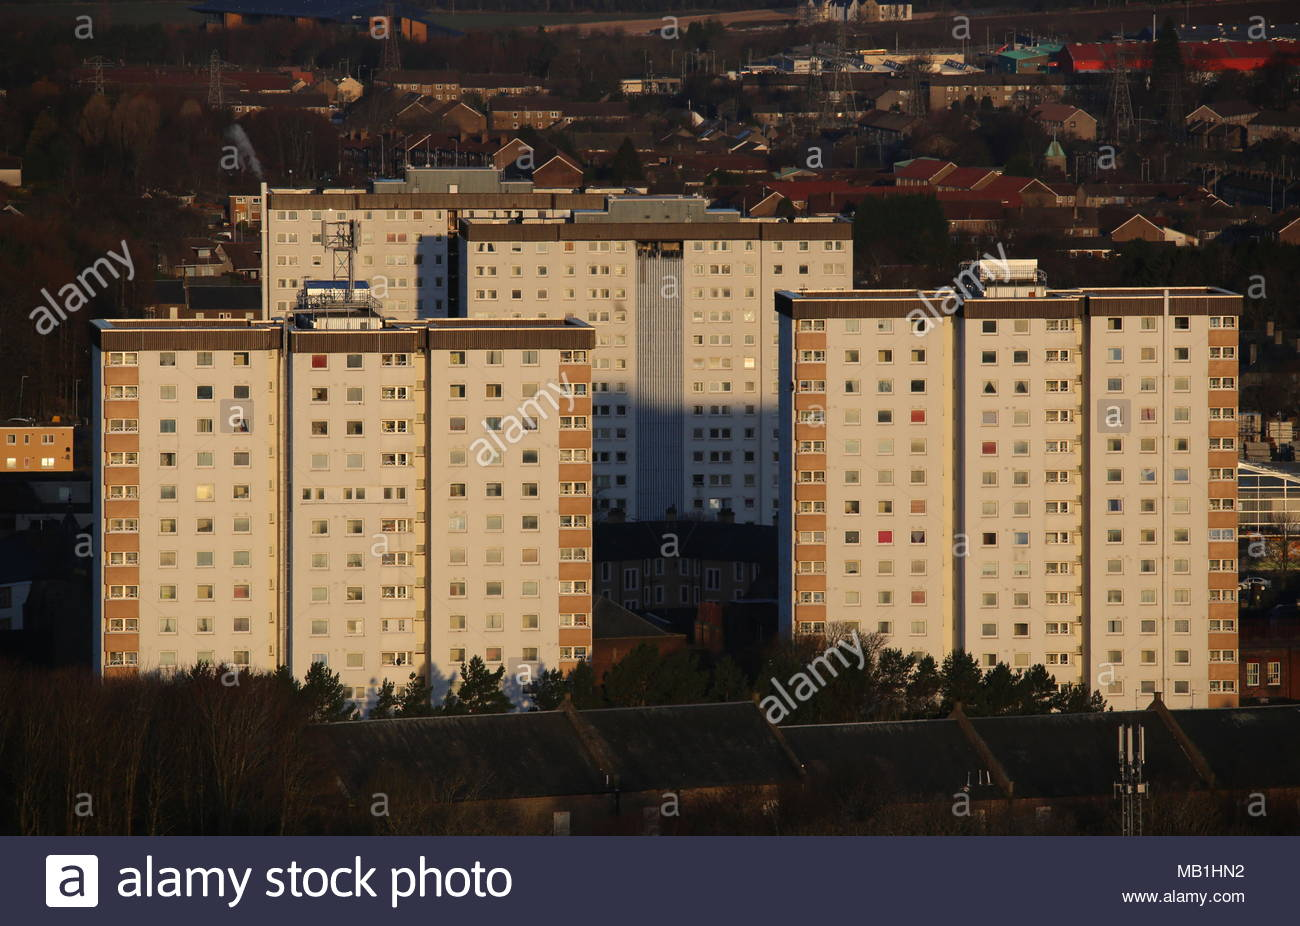 Elevated view of council housing Lochee Dundee Scotland  March 2018 - Stock Image